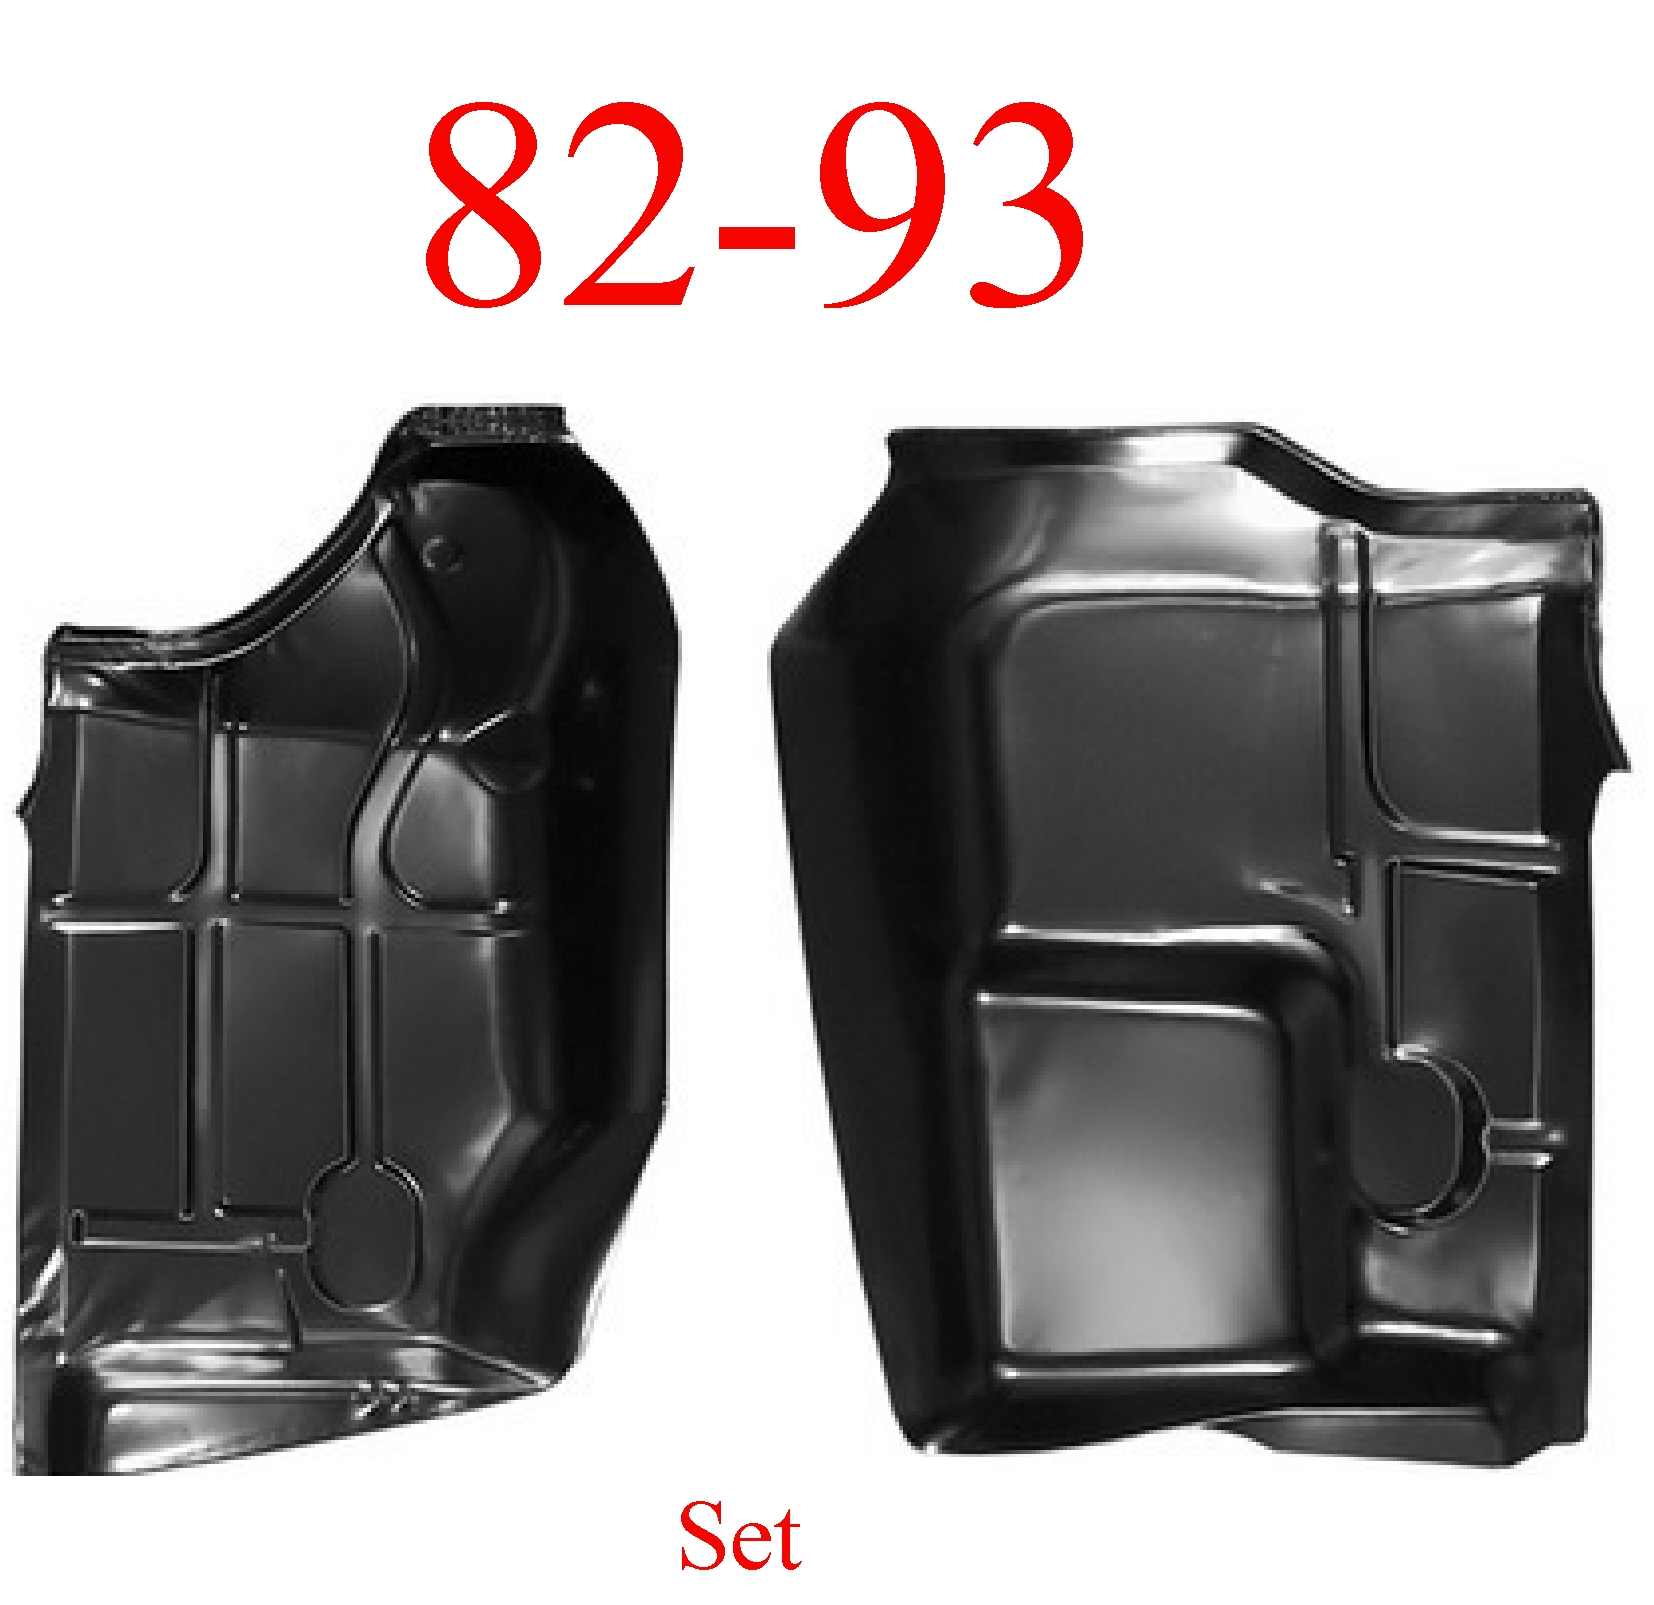 82-93 Chevy S10 Front Cab Floor Pan Set